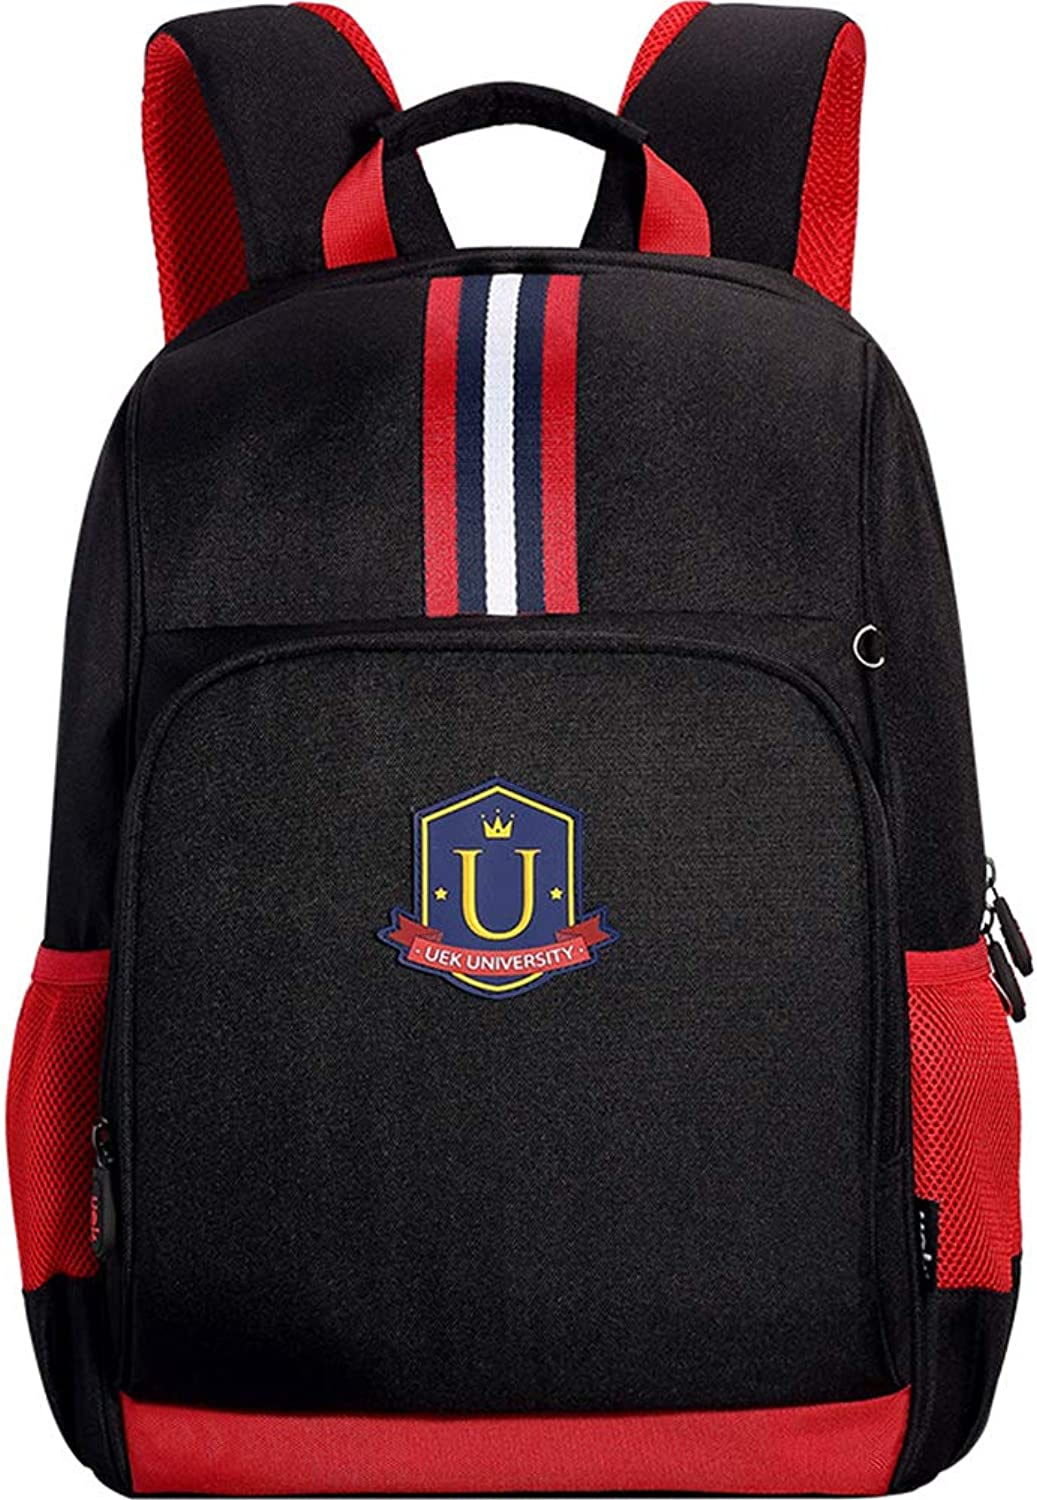 TOOSD College Backpack Primary School Bags Small Boys Girls 136 Grade Weight Loss Backpack 812 Years Ridge Pack